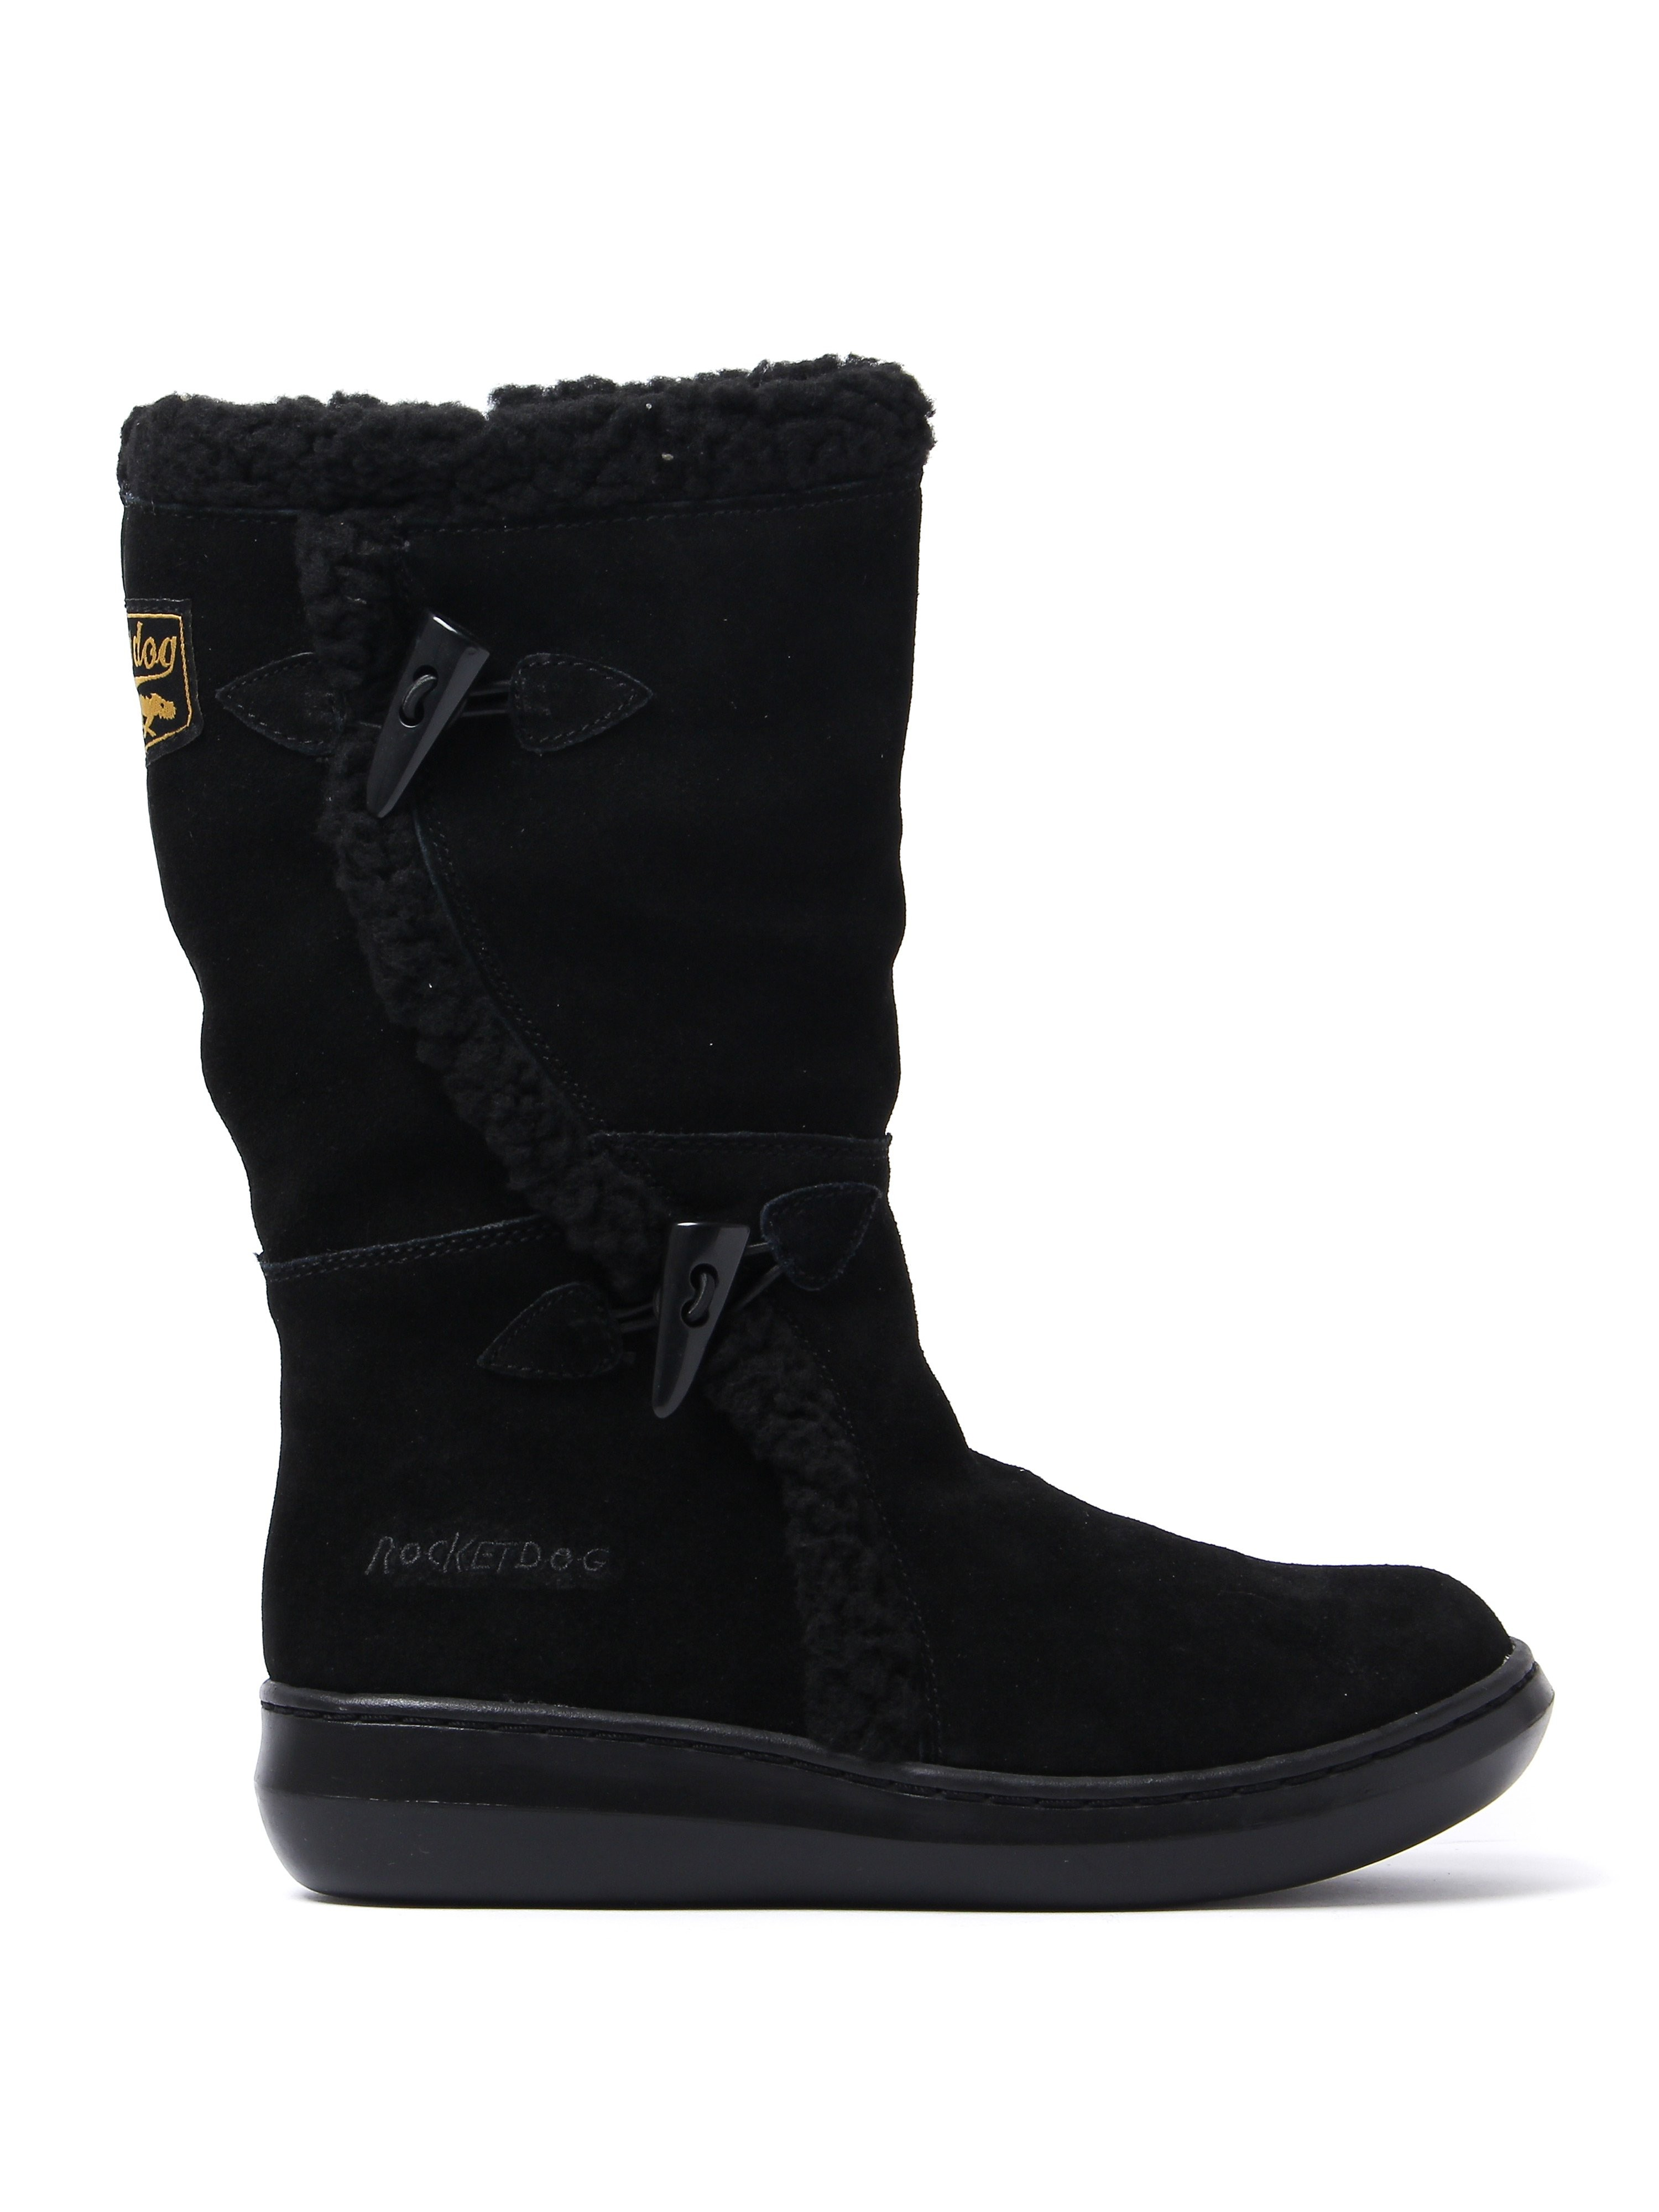 Rocket Dog Women's Slope Boots - Black Suede